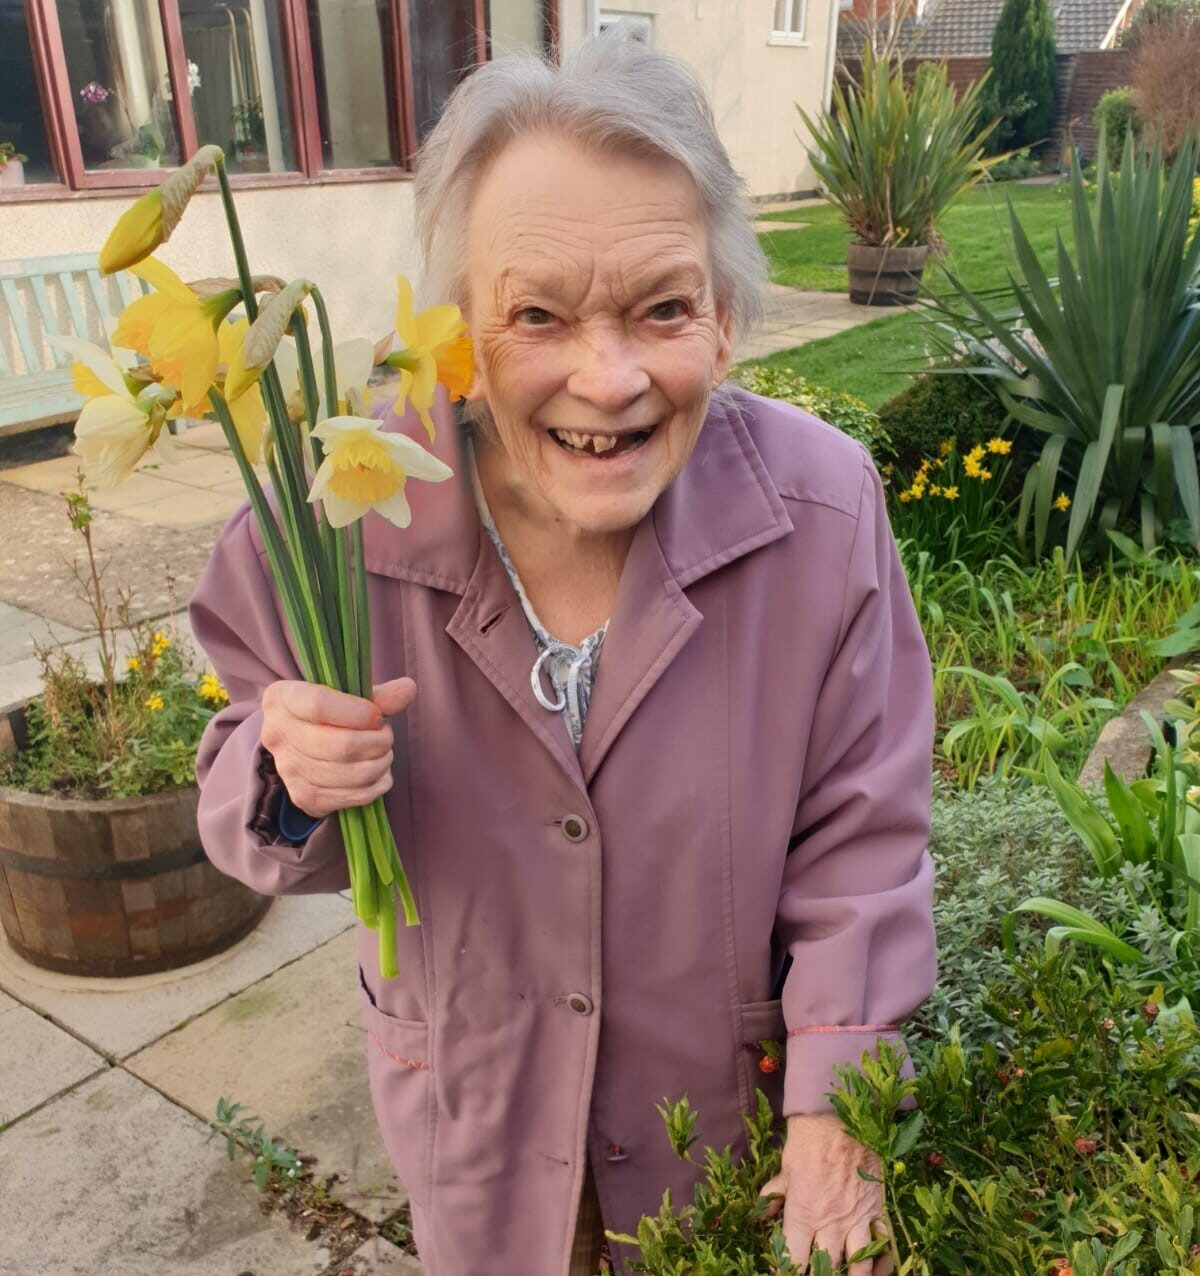 Daffodils at The Firs Nursing and Care Home in Taunton